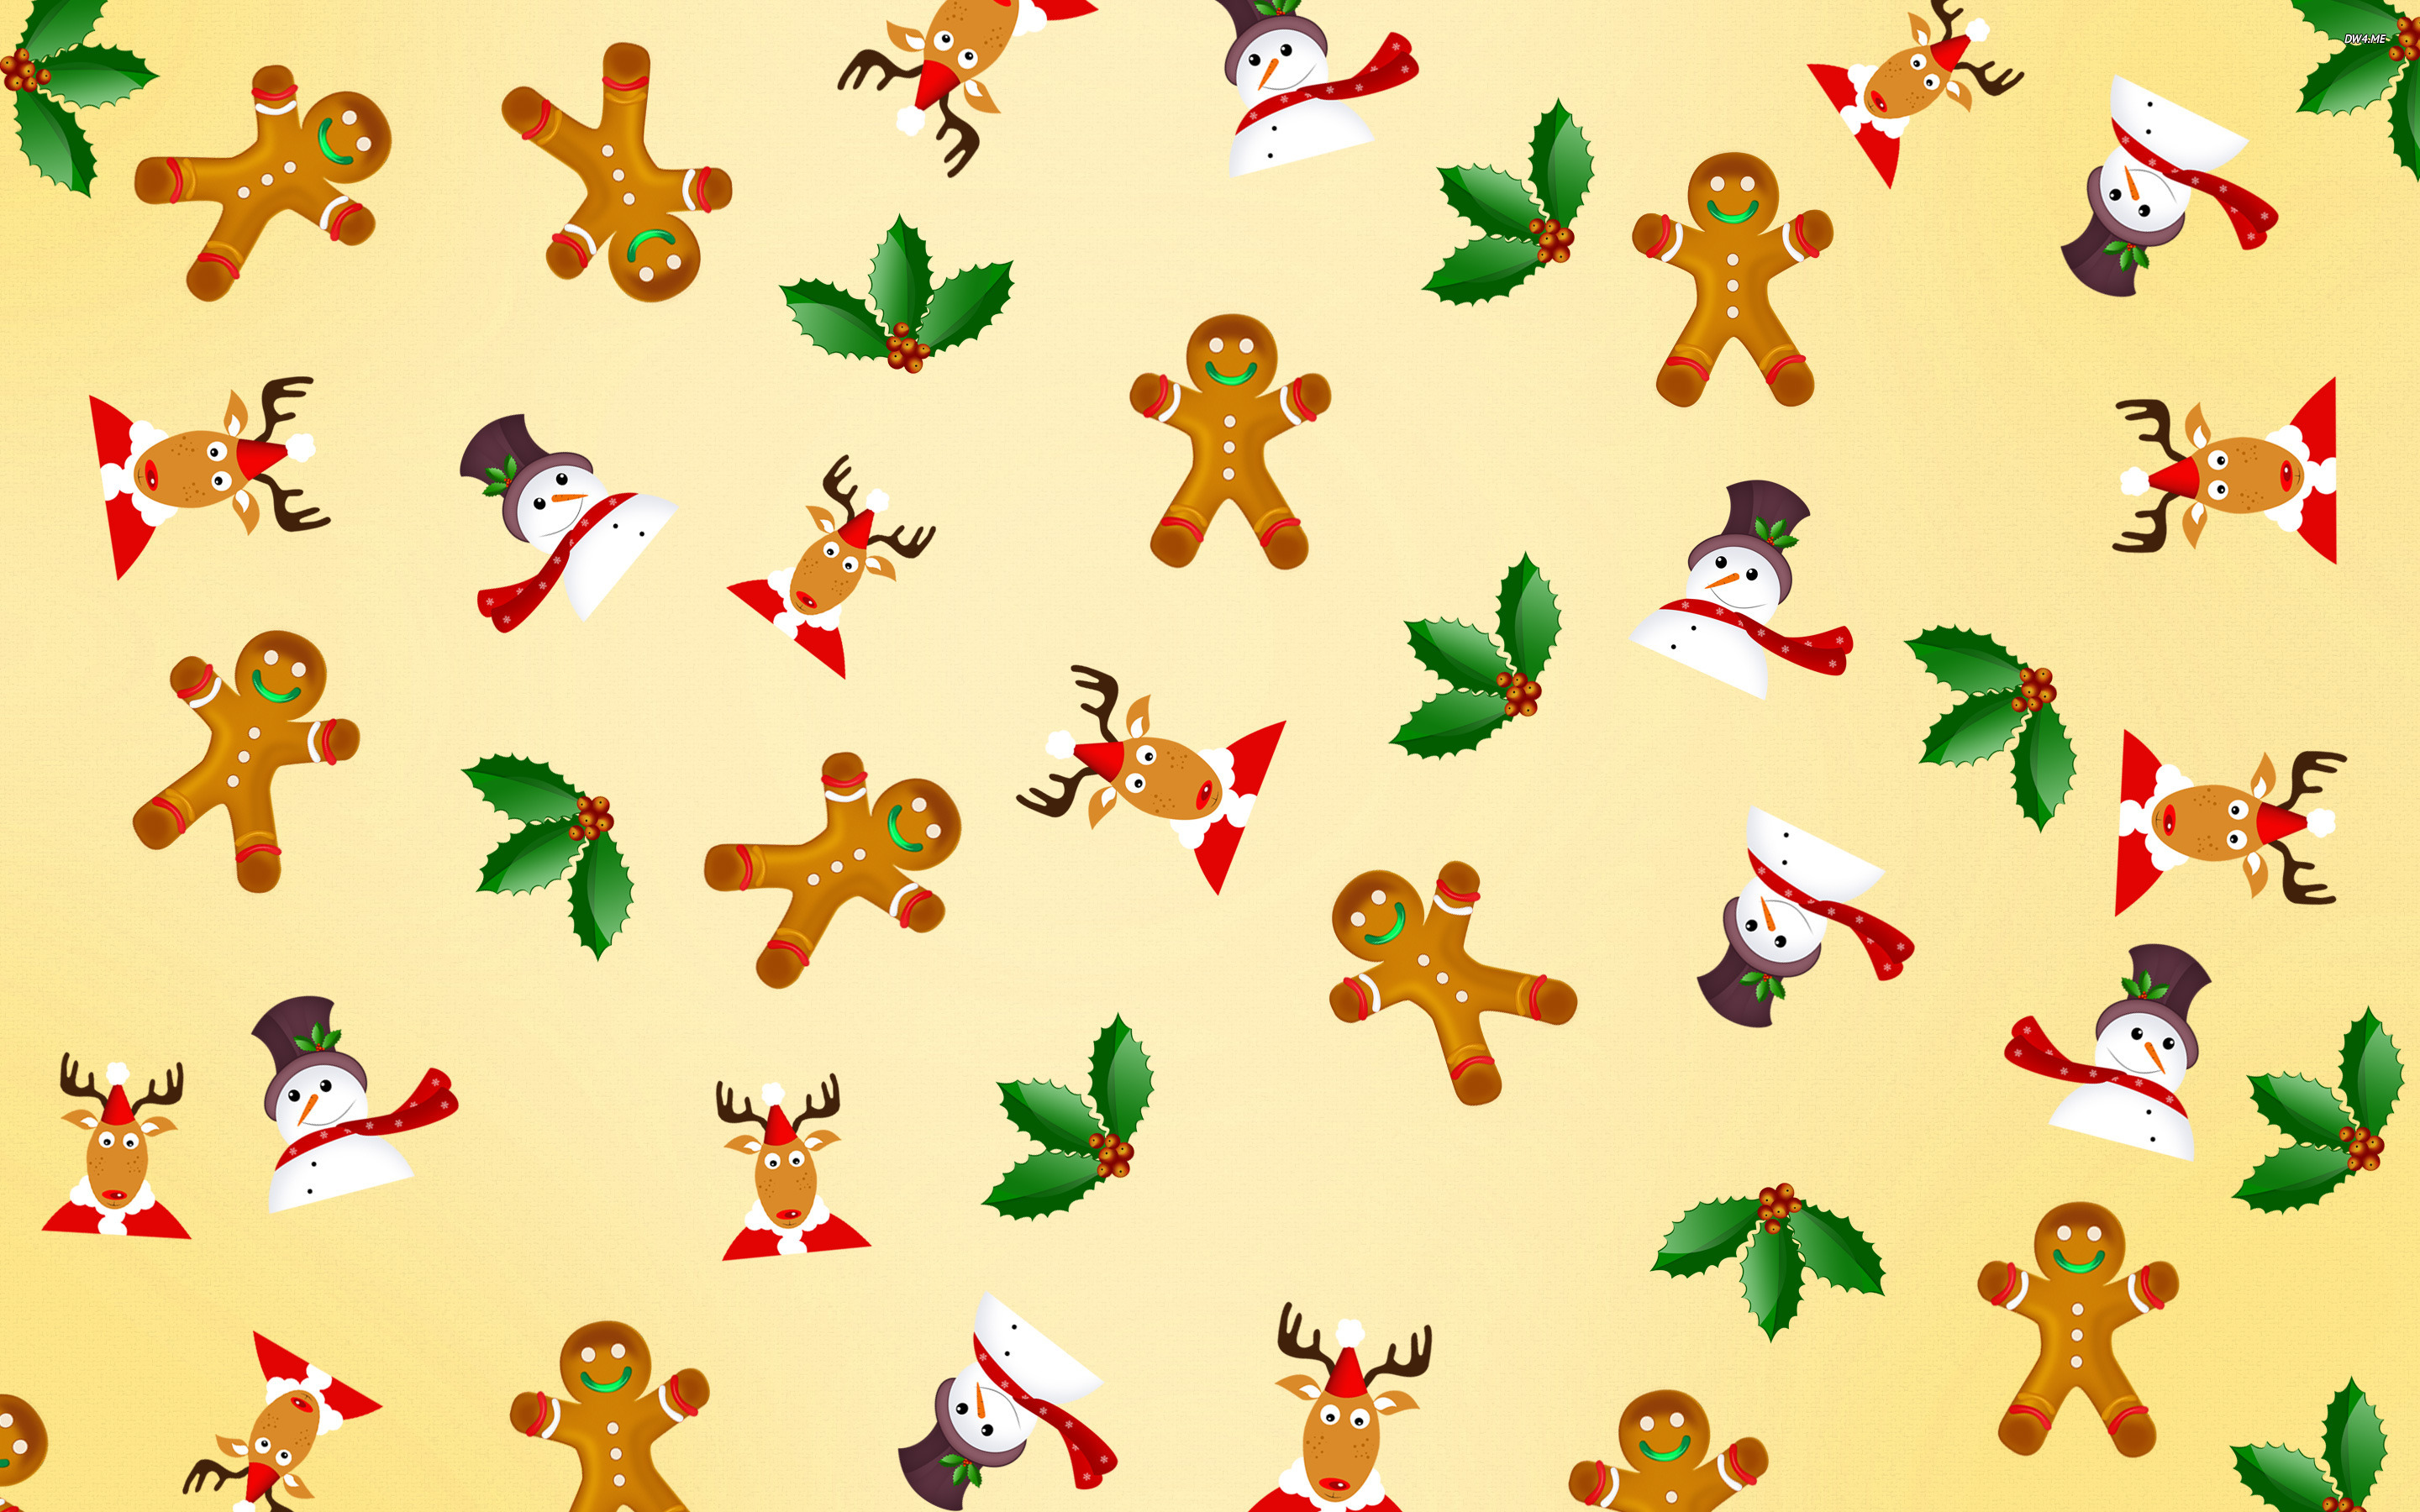 Christmas pattern wallpaper   Holiday wallpapers   1995 2880x1800